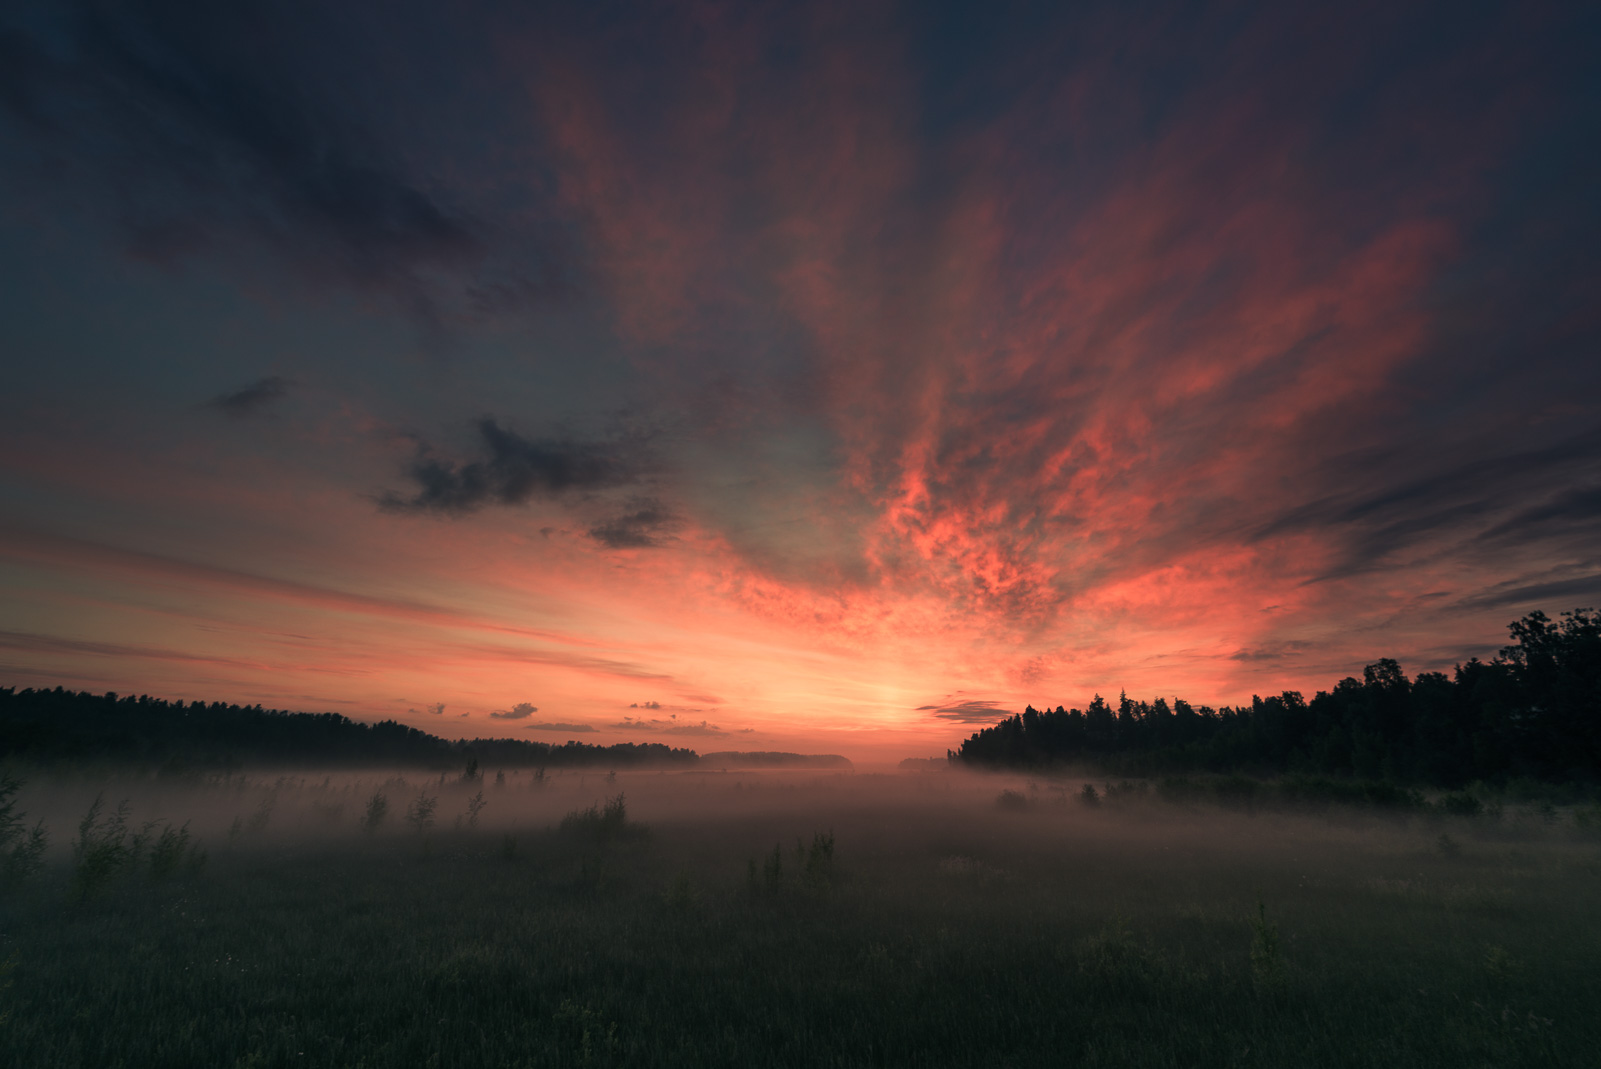 After  Lightroom Preset , Vivid Sunrise - Dawn by Mikko Lagerstedt